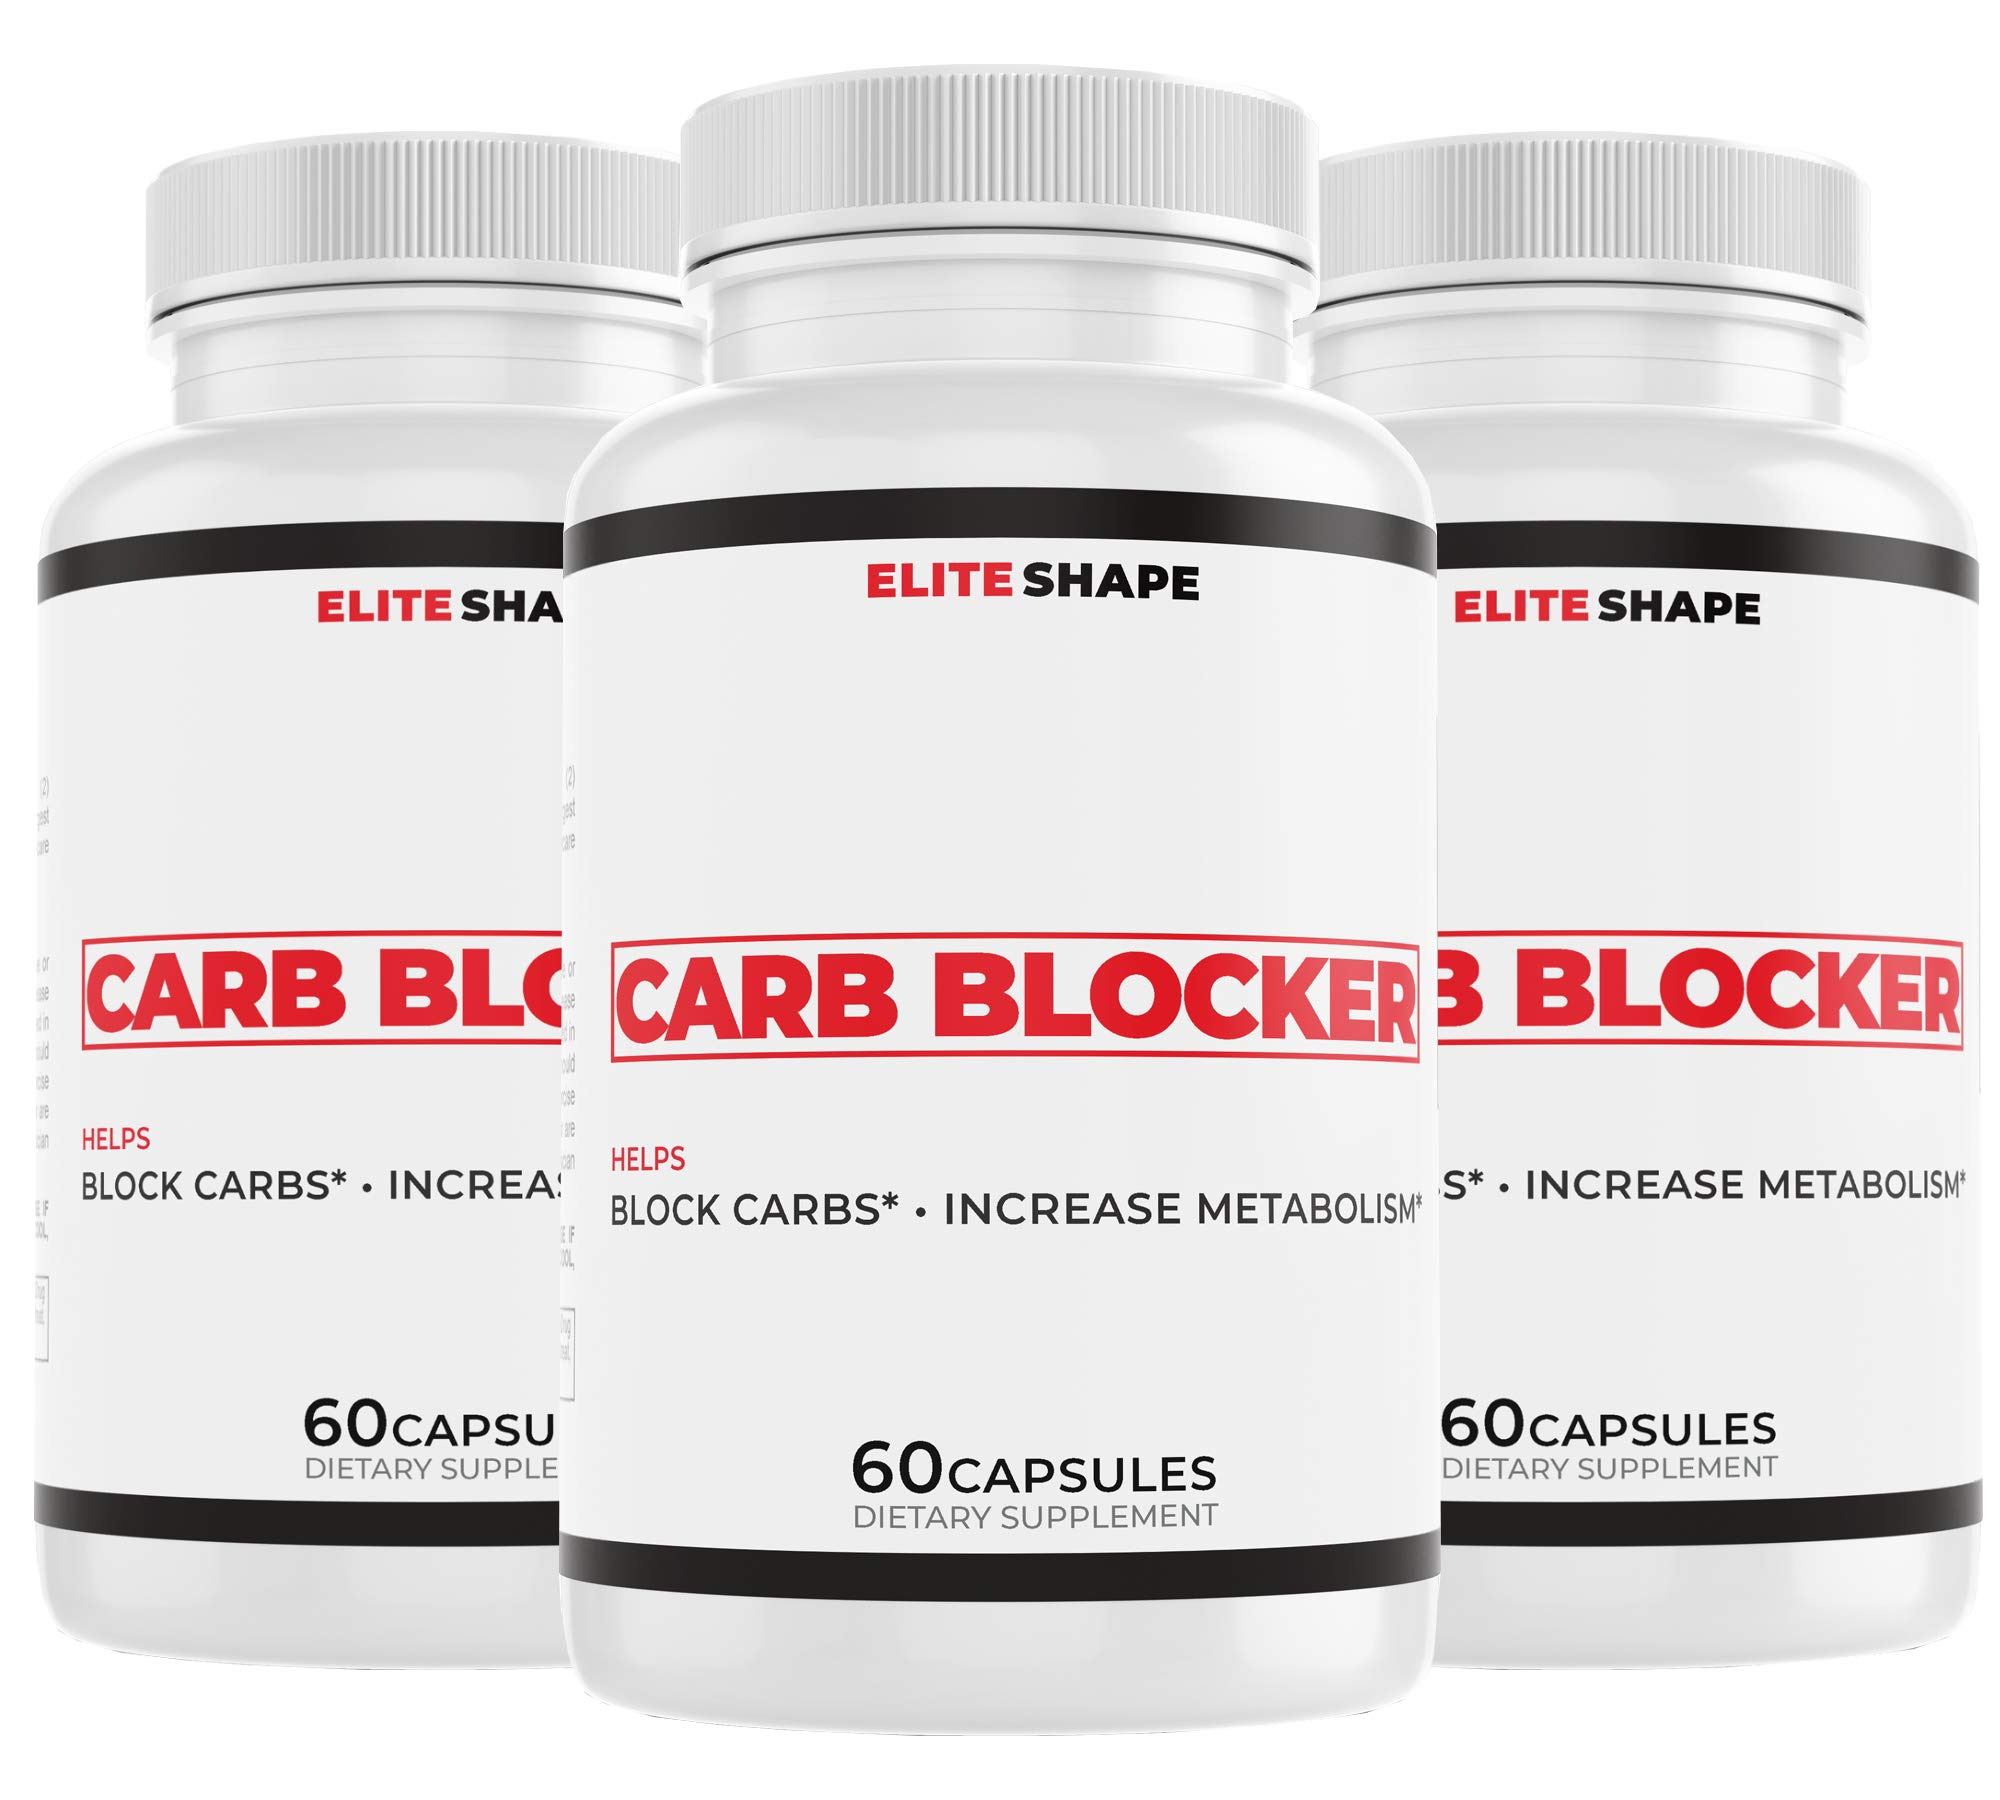 Carb Blocker by Elite Shape | Dietary Supplement to Accelerate Weight Loss | Blocks Fats, Carbs, and Starches | 60 Capsules (3) by Elite Shape (Image #1)